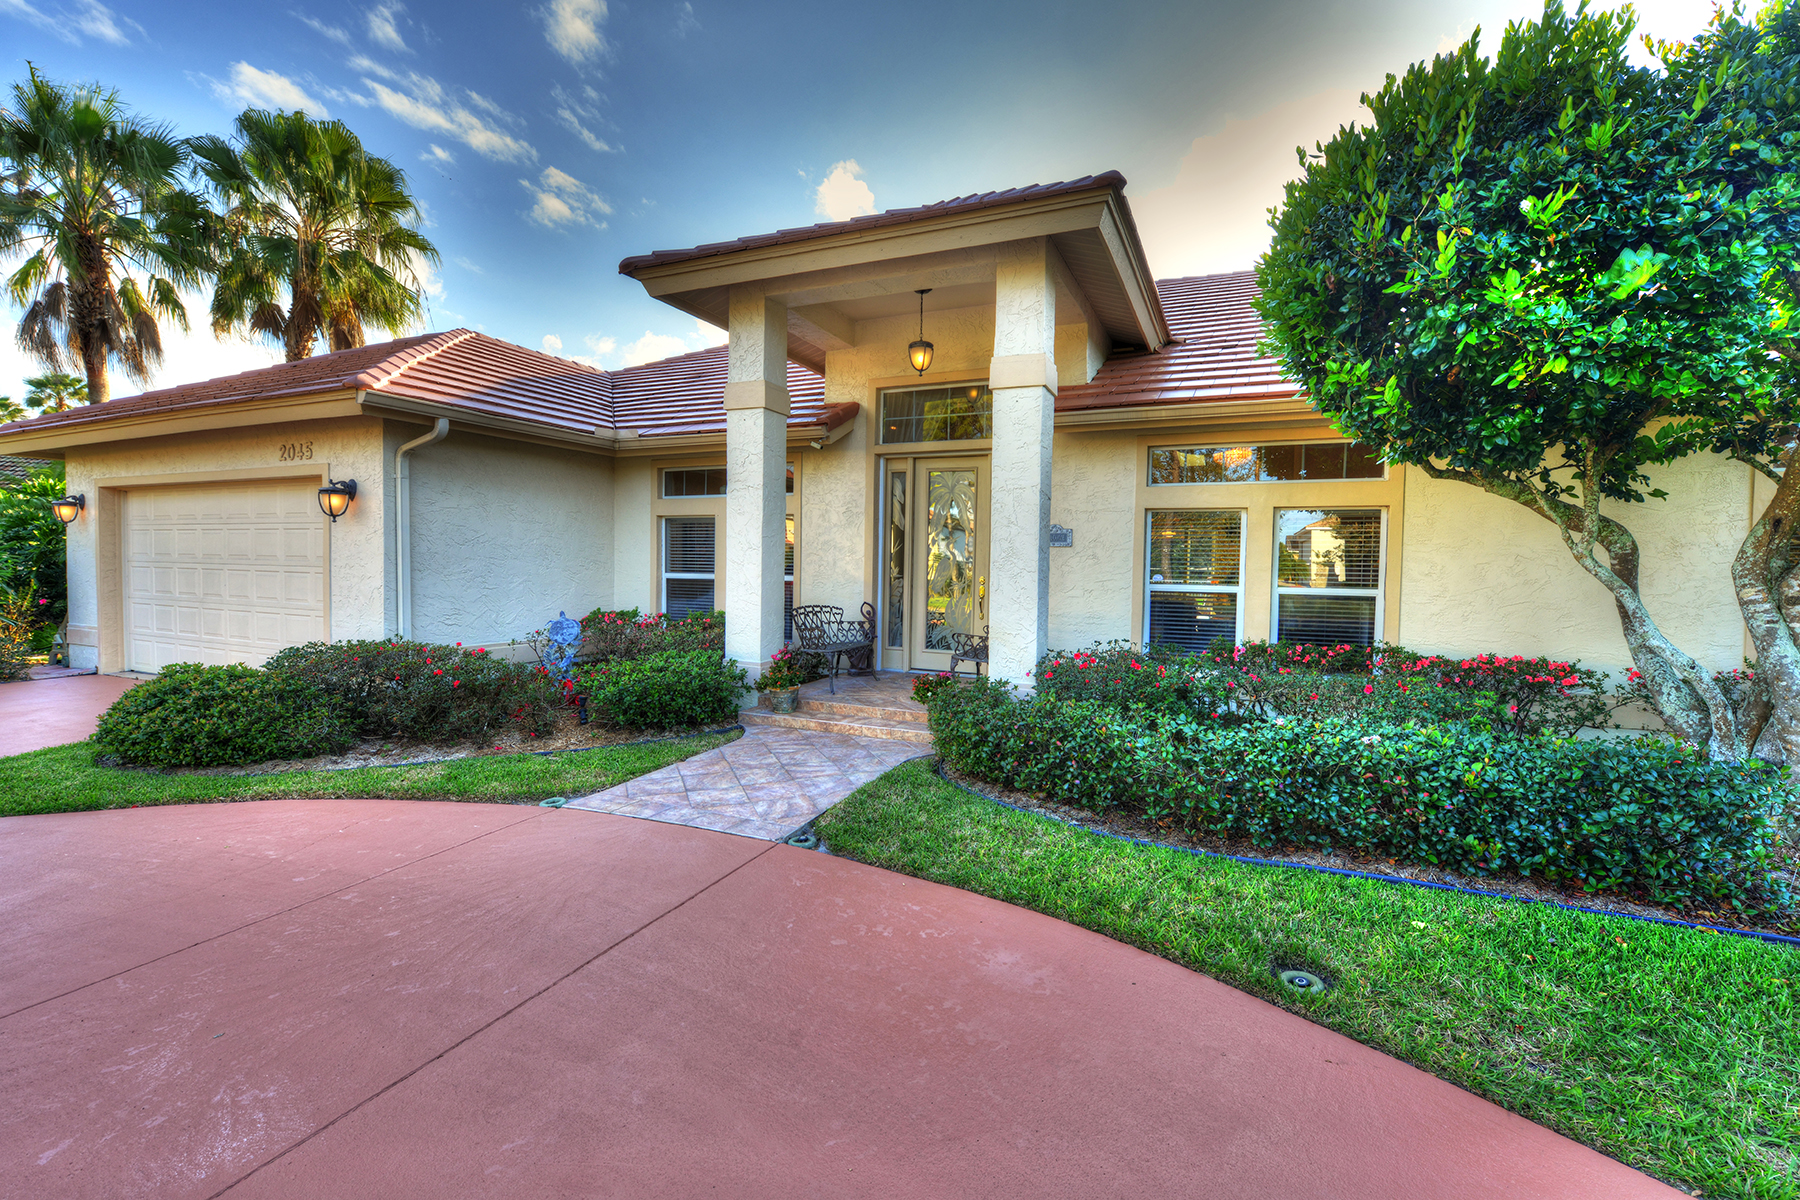 Single Family Home for Sale at PORT ORANGE AND THE BEACHES 2045 Country Club Dr Port Orange, Florida, 32128 United States